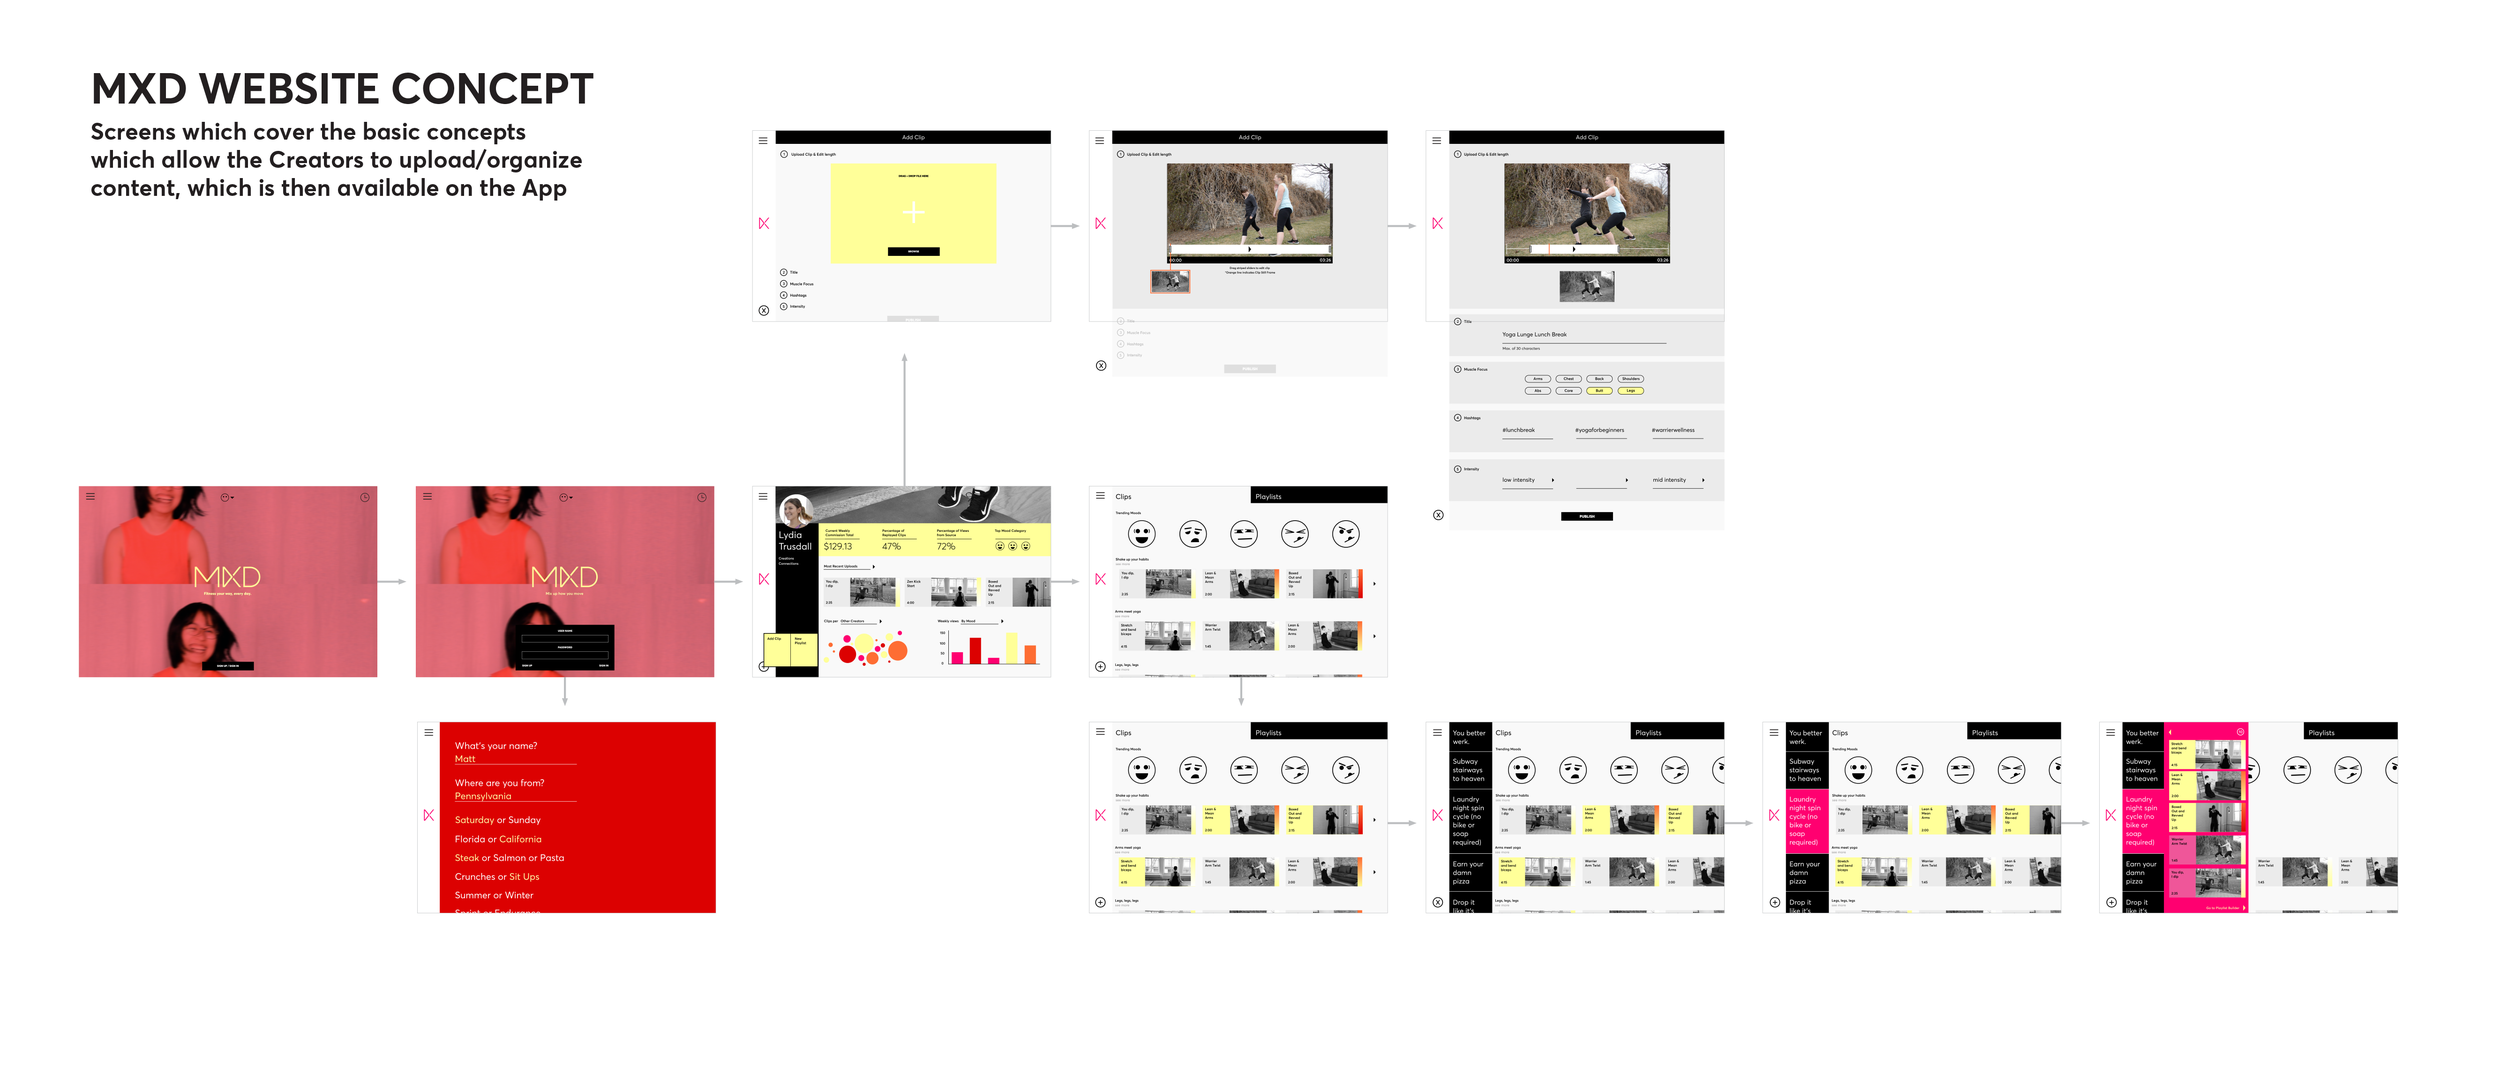 MXD-Ecosystem-LayOut-05.png